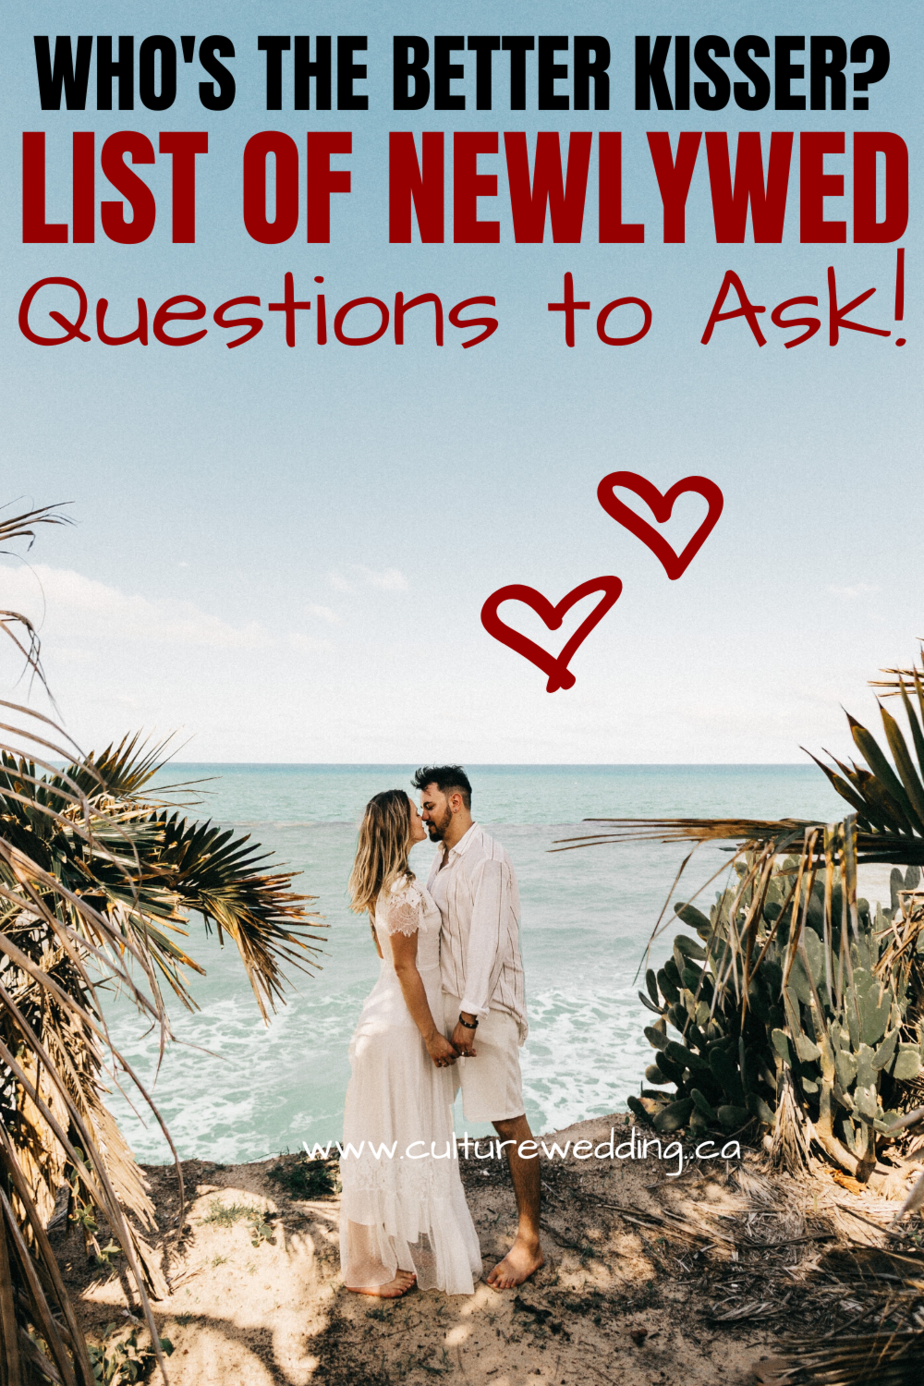 Looking for questions to ask the newlywed couple? We have a list of funny questions you can ask the newlywed couple at your next party. They are perfect questions to ask newlywed couples if you are planning a games night. #newlywed #newlywedgame